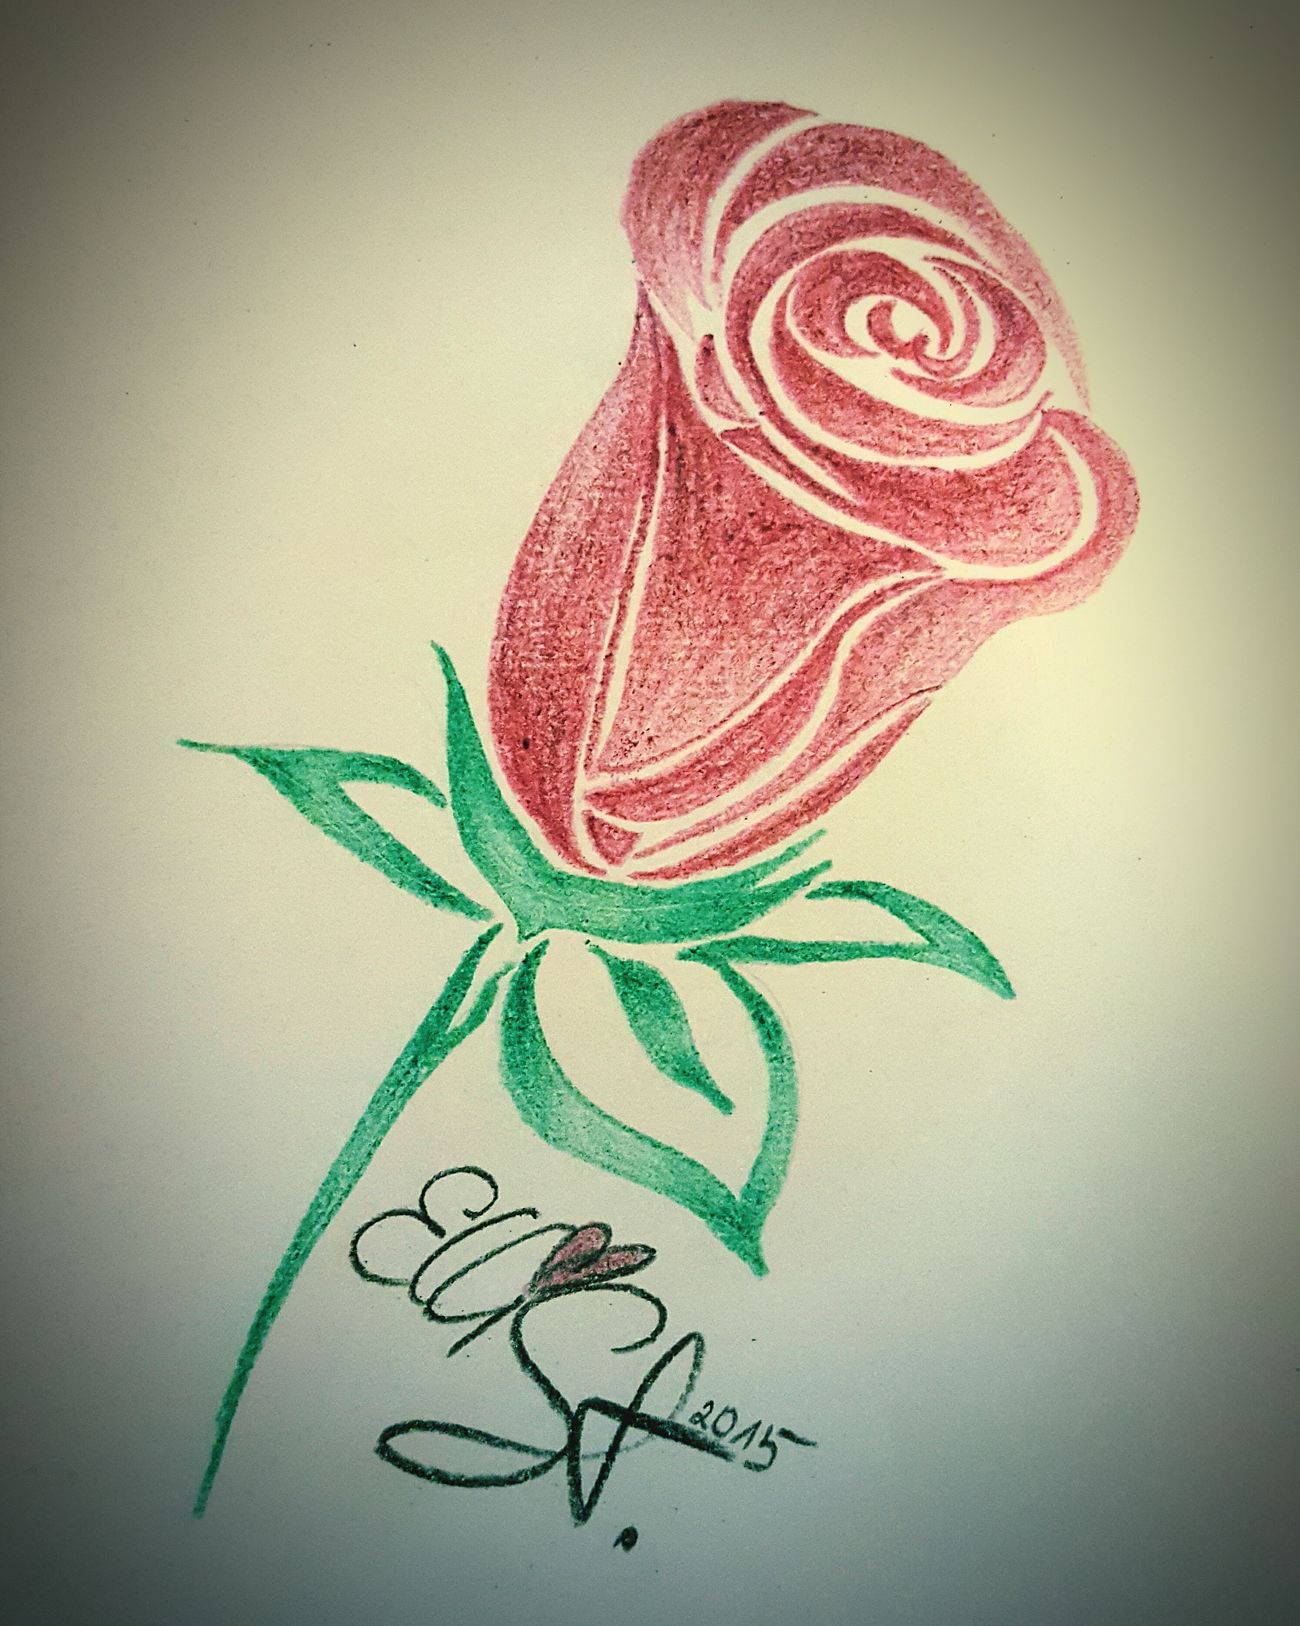 GraphitePencil Drwing Colors Roses Art, Drawing, Creativity Flowers Tribal